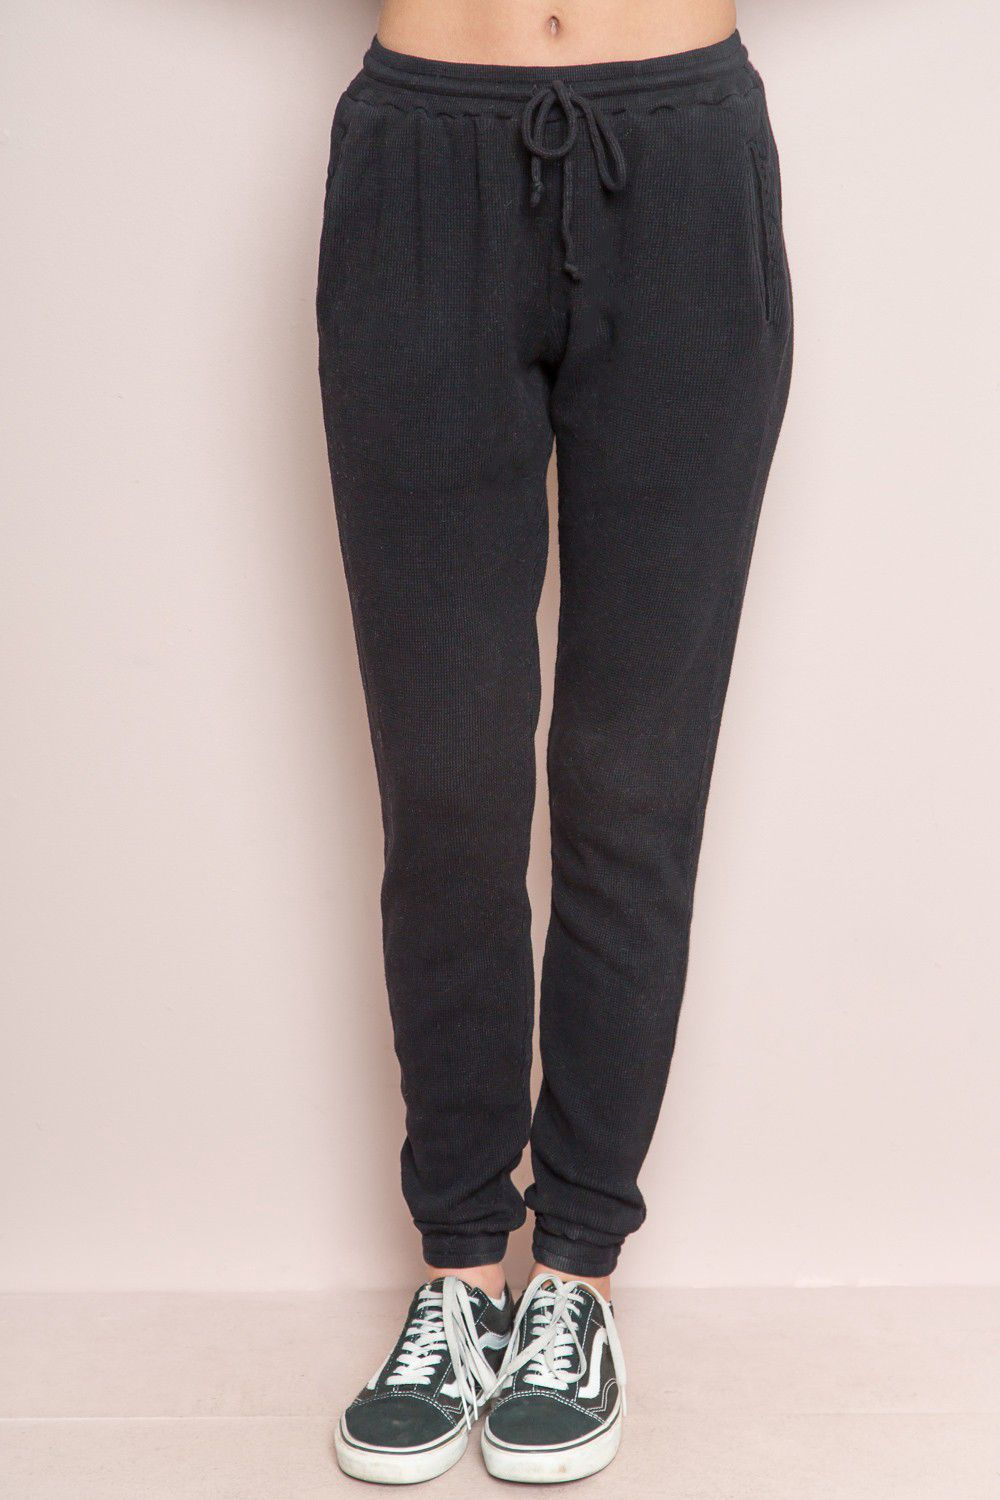 rich and magnificent newest style of hot-selling professional Rosa Thermal Sweatpants - Brandy Melville   reve